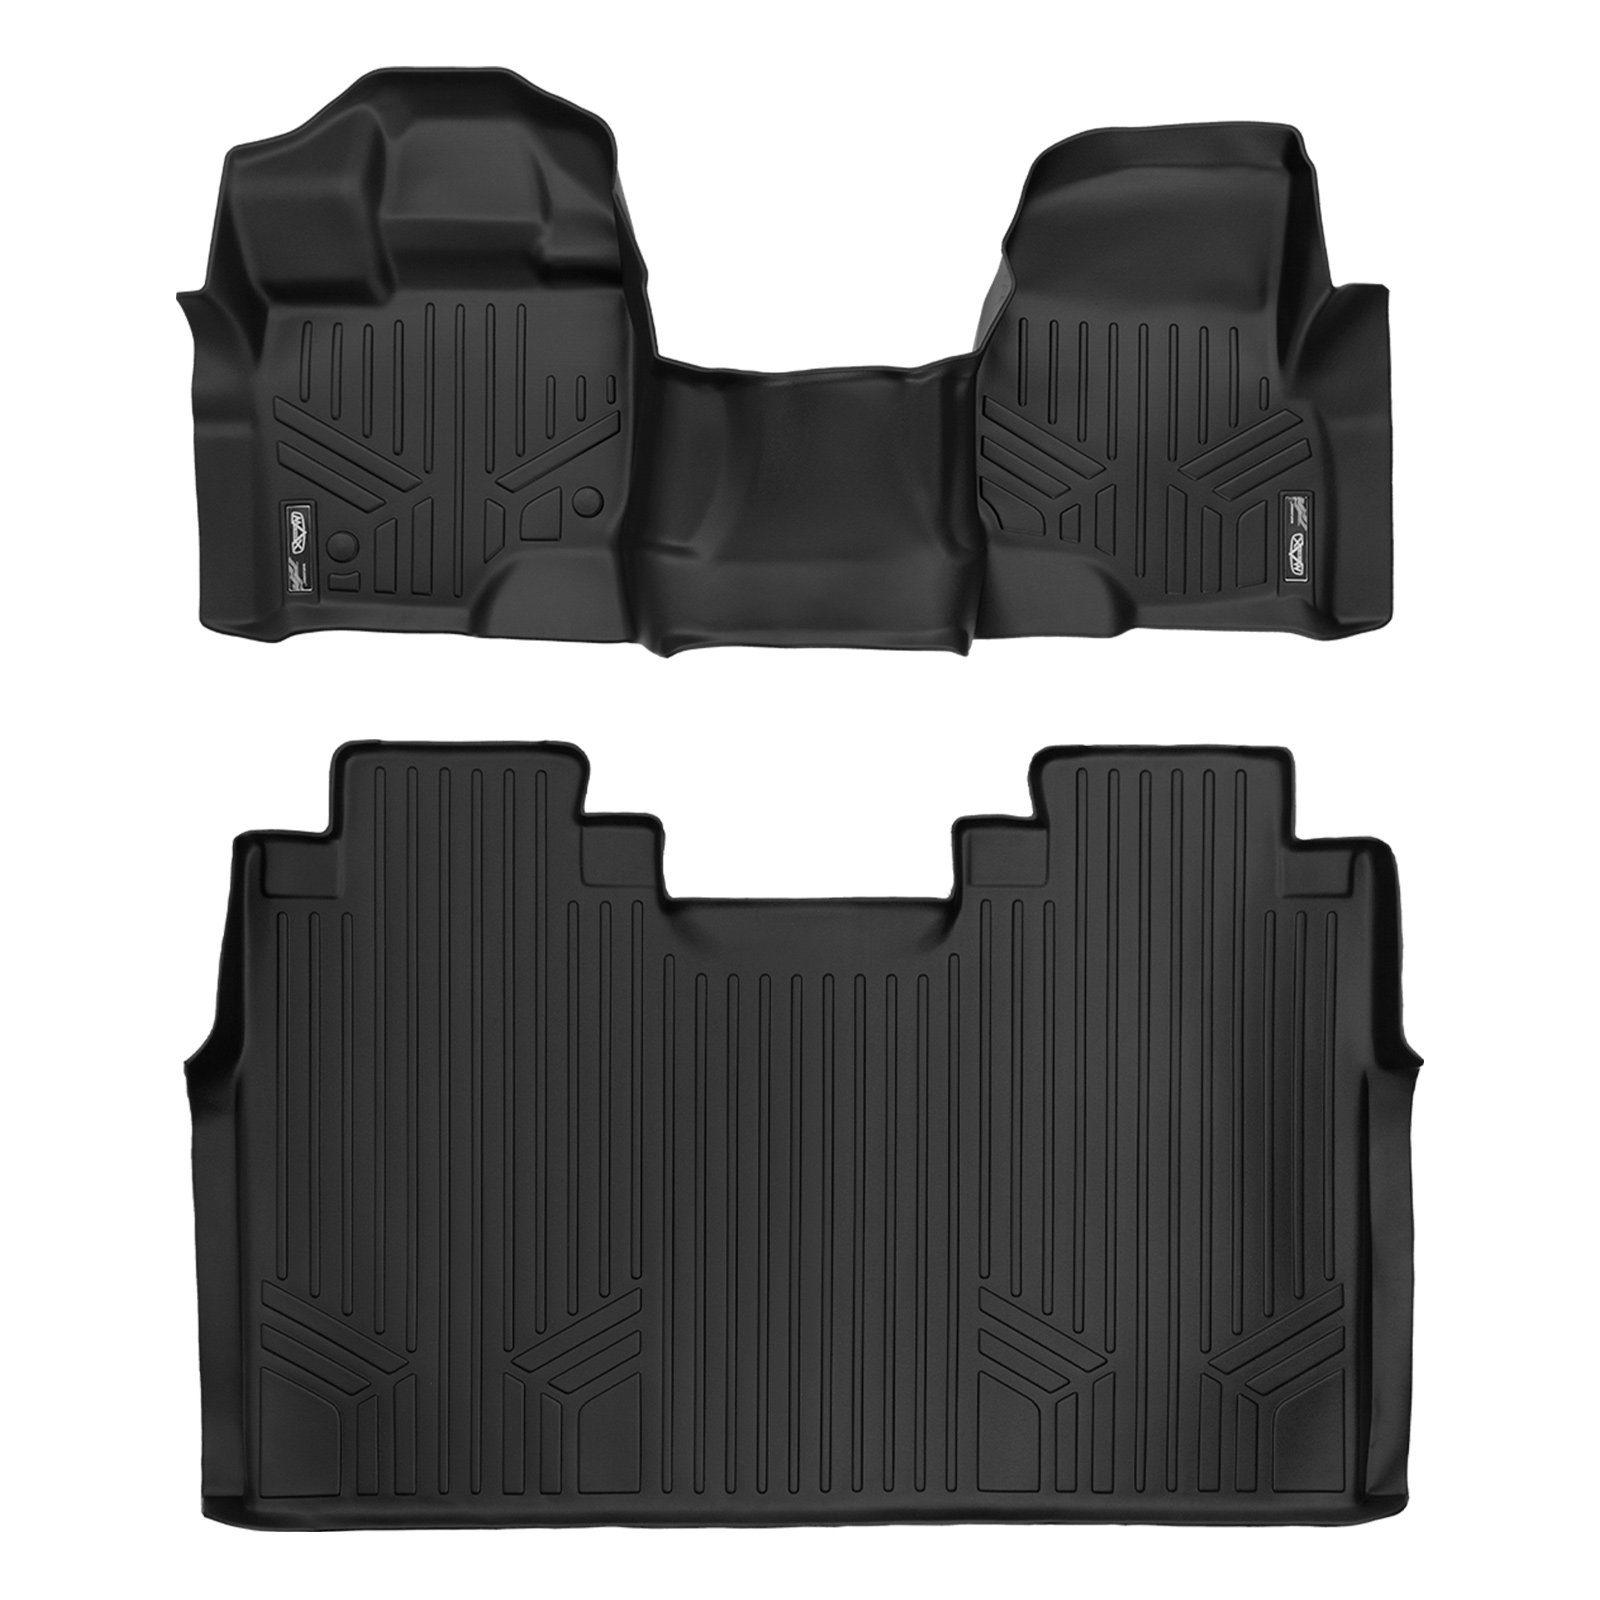 MAX LINER A0212/B0188 Custom Fit Floor Mats 2 Liner Set Black for 2015-2019 Ford F-150 SuperCrew Cab with 1st Row Bench Seat by MAX LINER (Image #1)